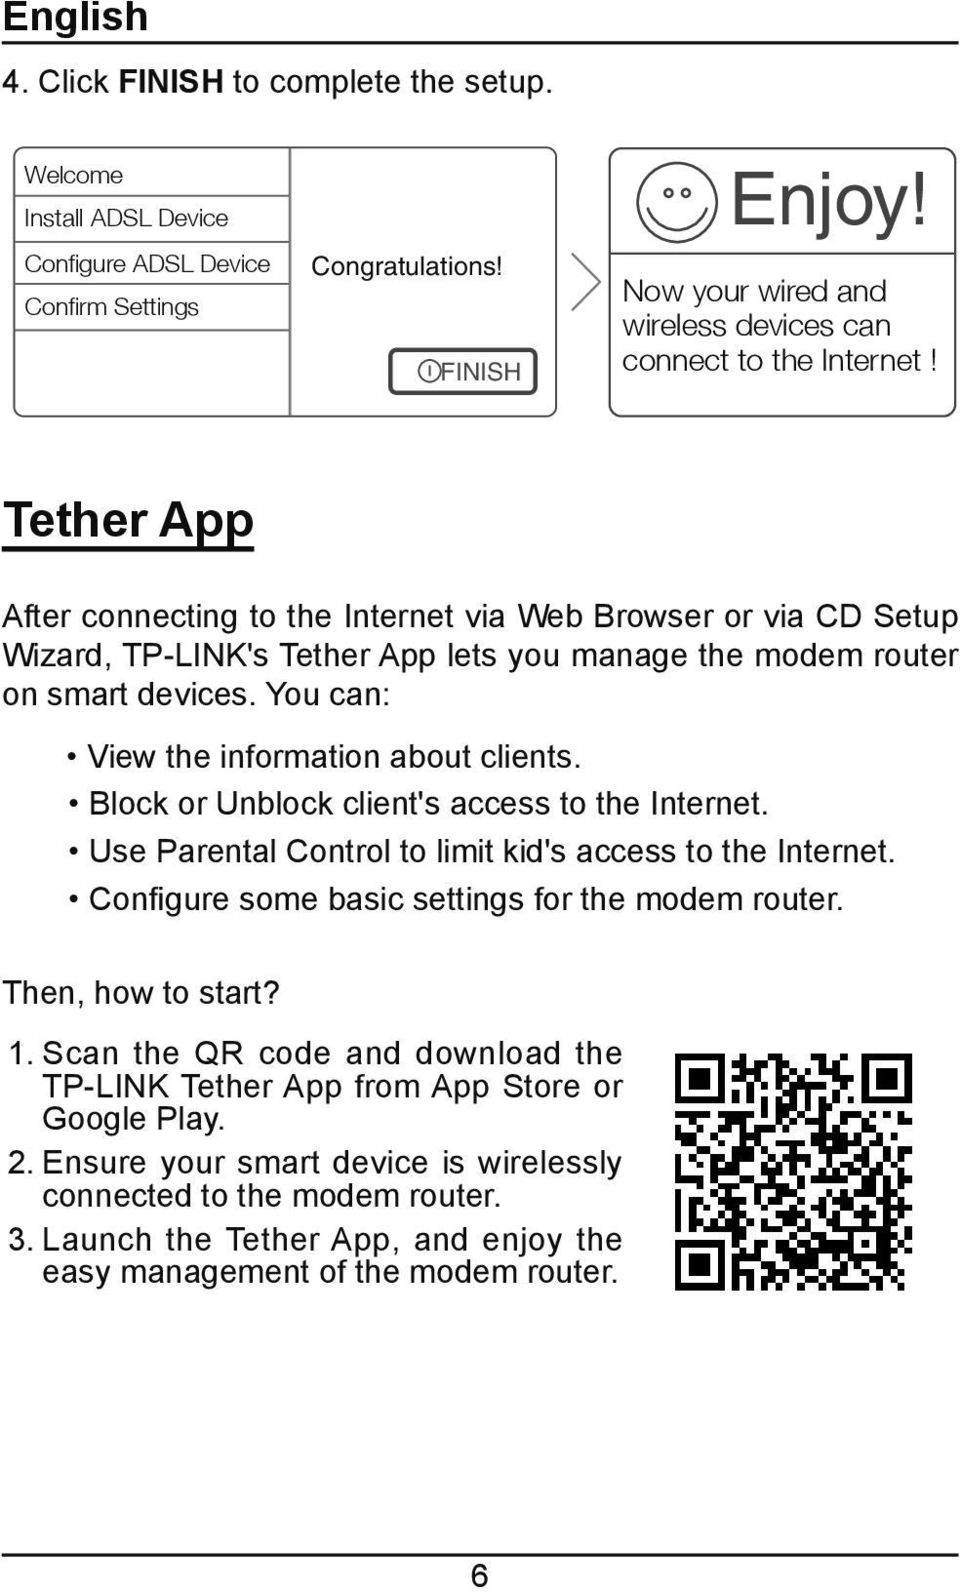 Tether App After connecting to the Internet via Web Browser or via CD Setup Wizard, TP-LINK's Tether App lets you manage the modem router on smart devices. You can: View the information about clients.